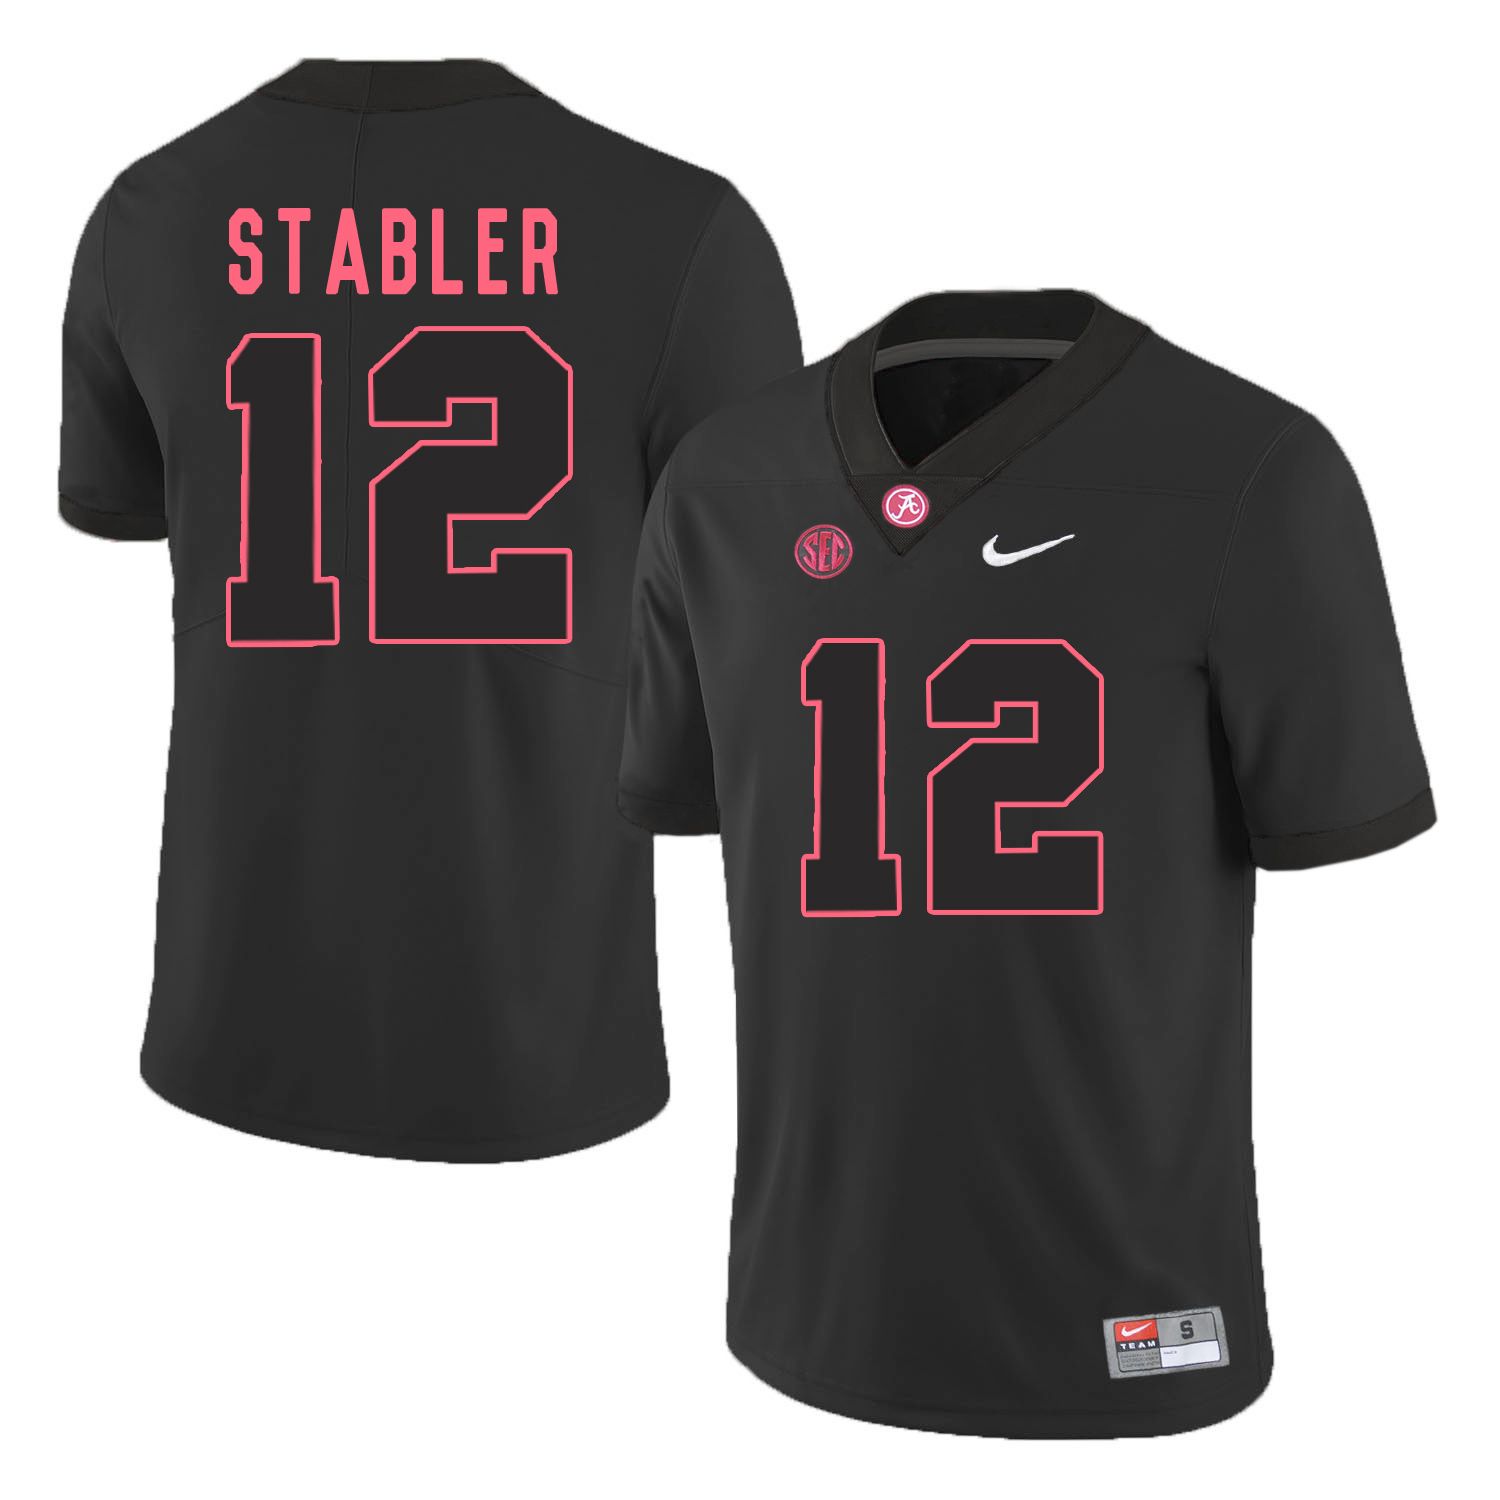 Alabama Crimson Tide 12 Ken Stabler Black College Football Jersey